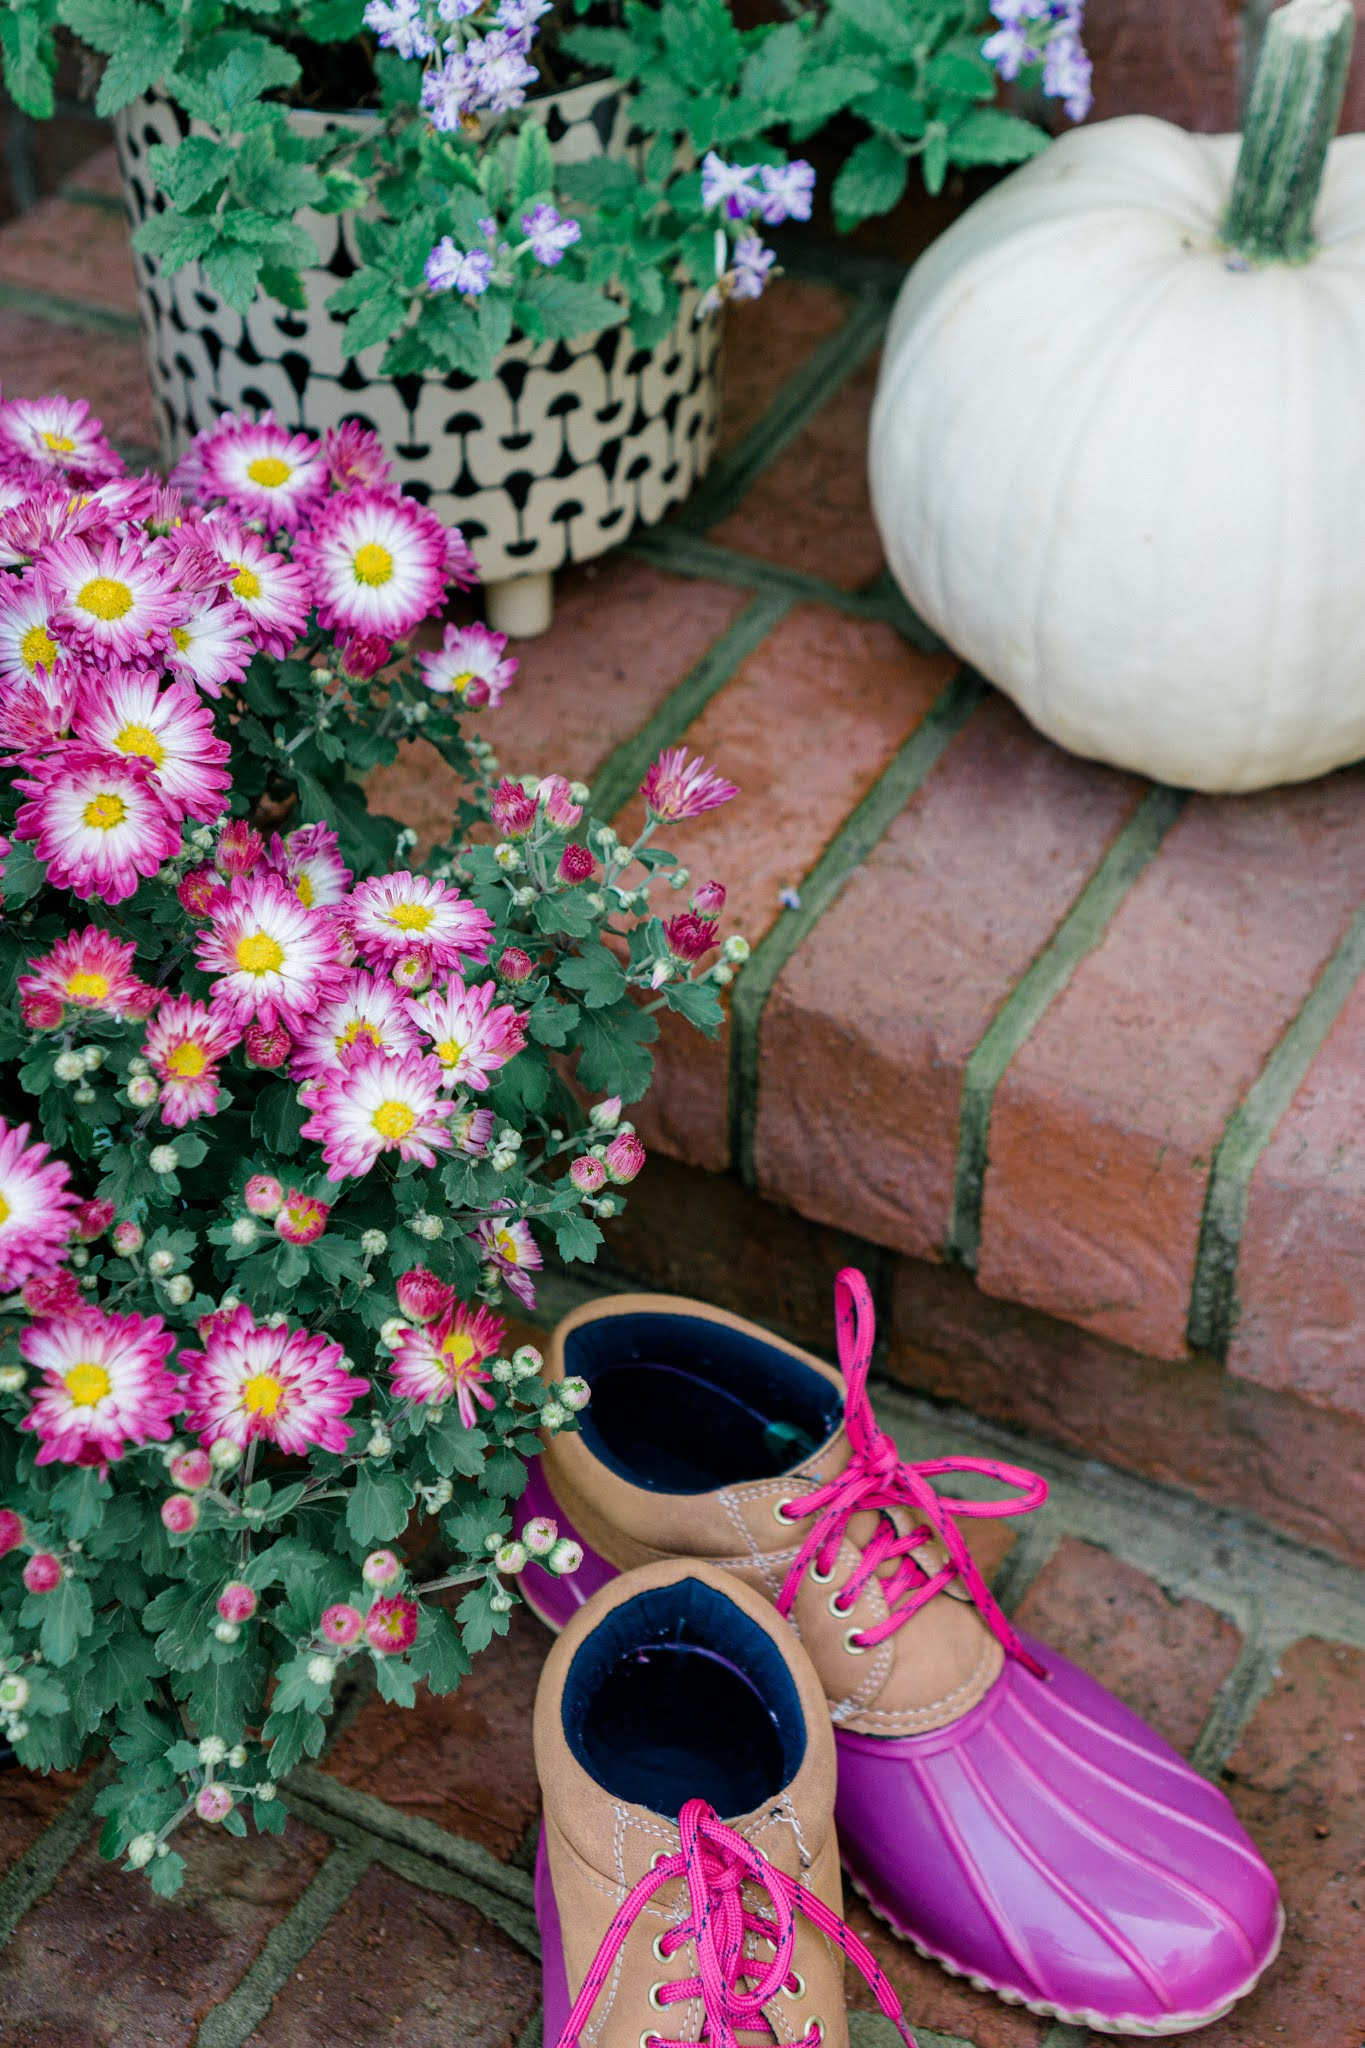 Add mums and pumpkins to your front porch for fall decorations